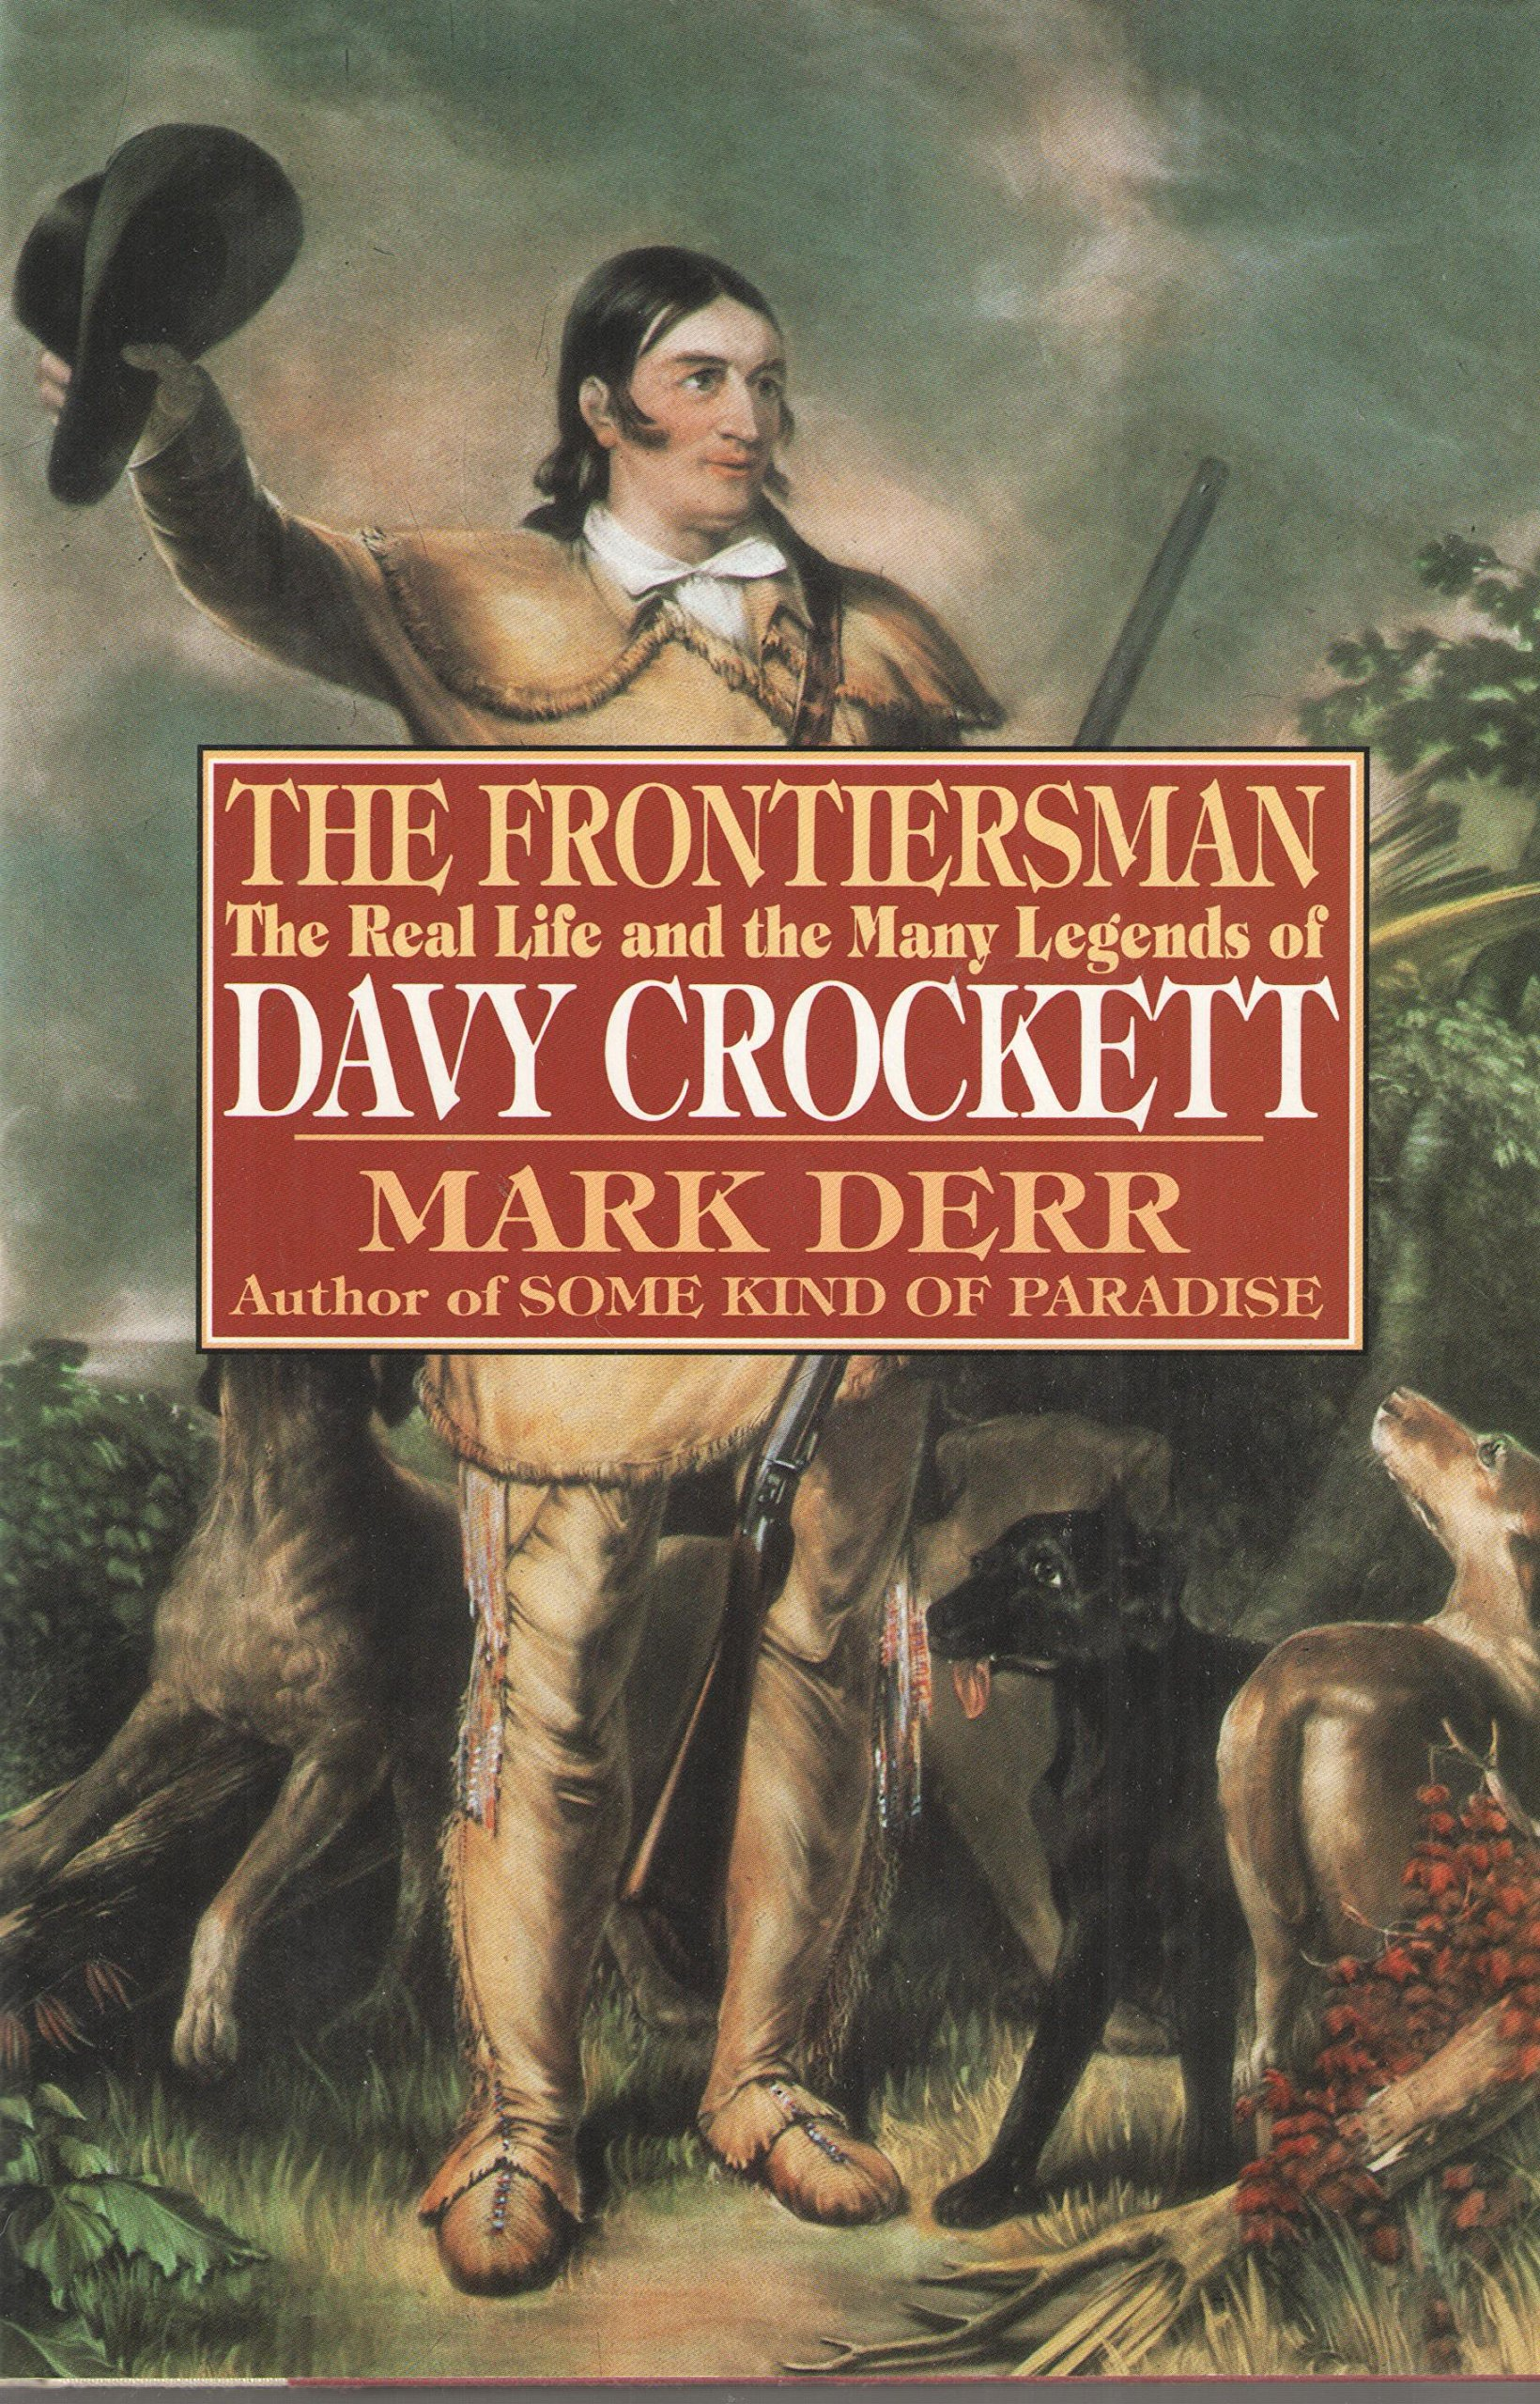 Davy crockett myths and legends